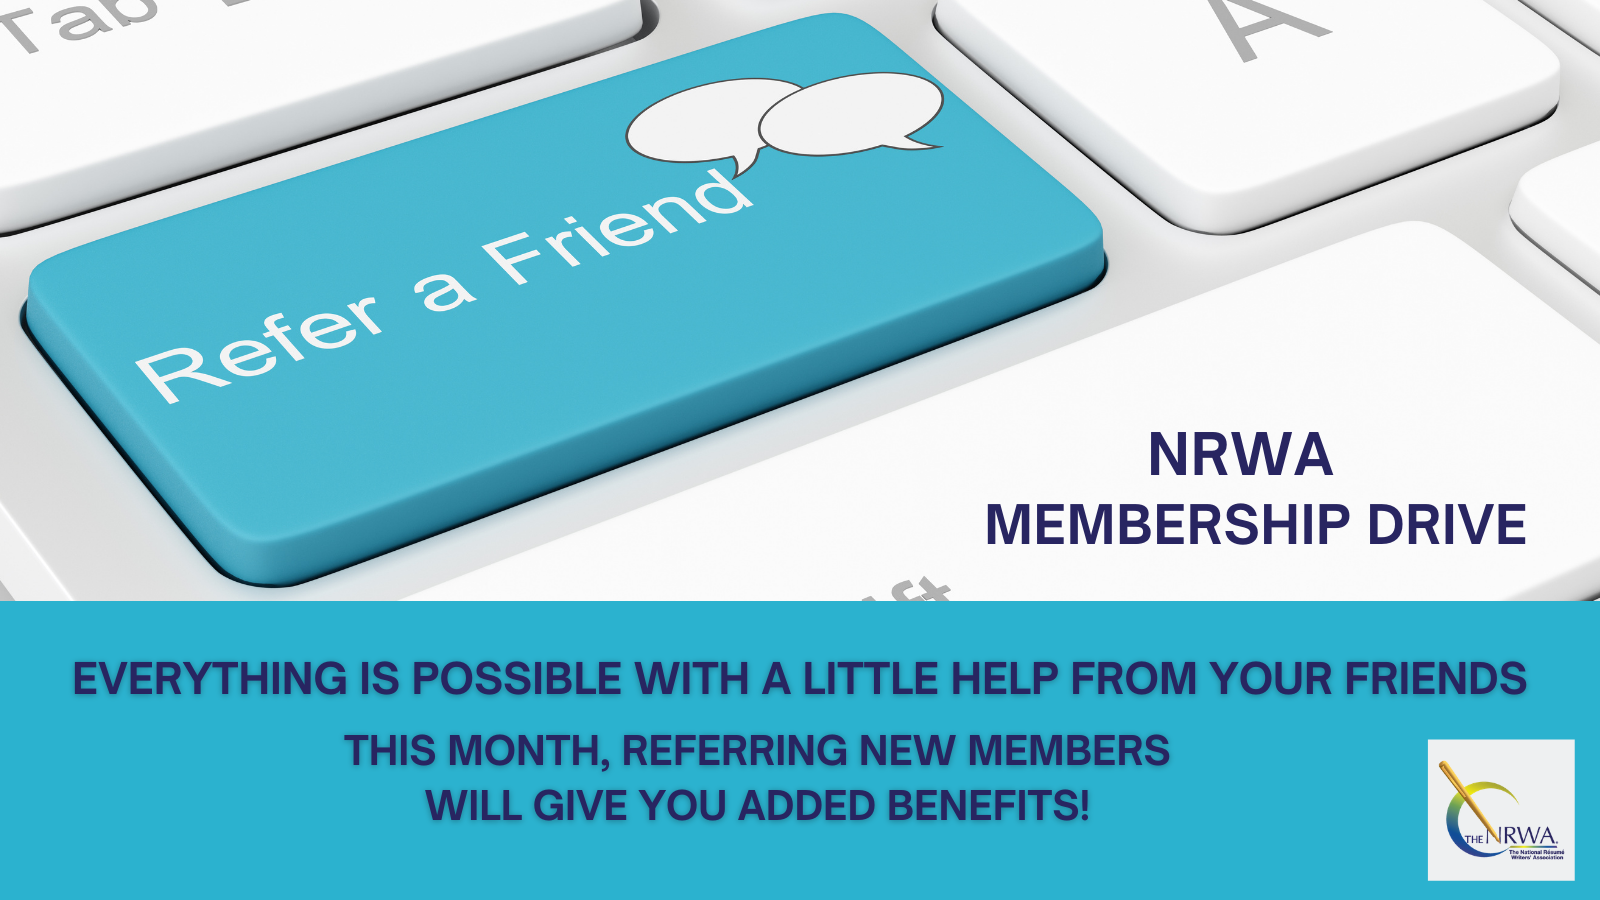 NRWA Membership Drive - Refer a Friend - Everything is possible with a little help from your friends. This month, referring new members will give you added benefits!